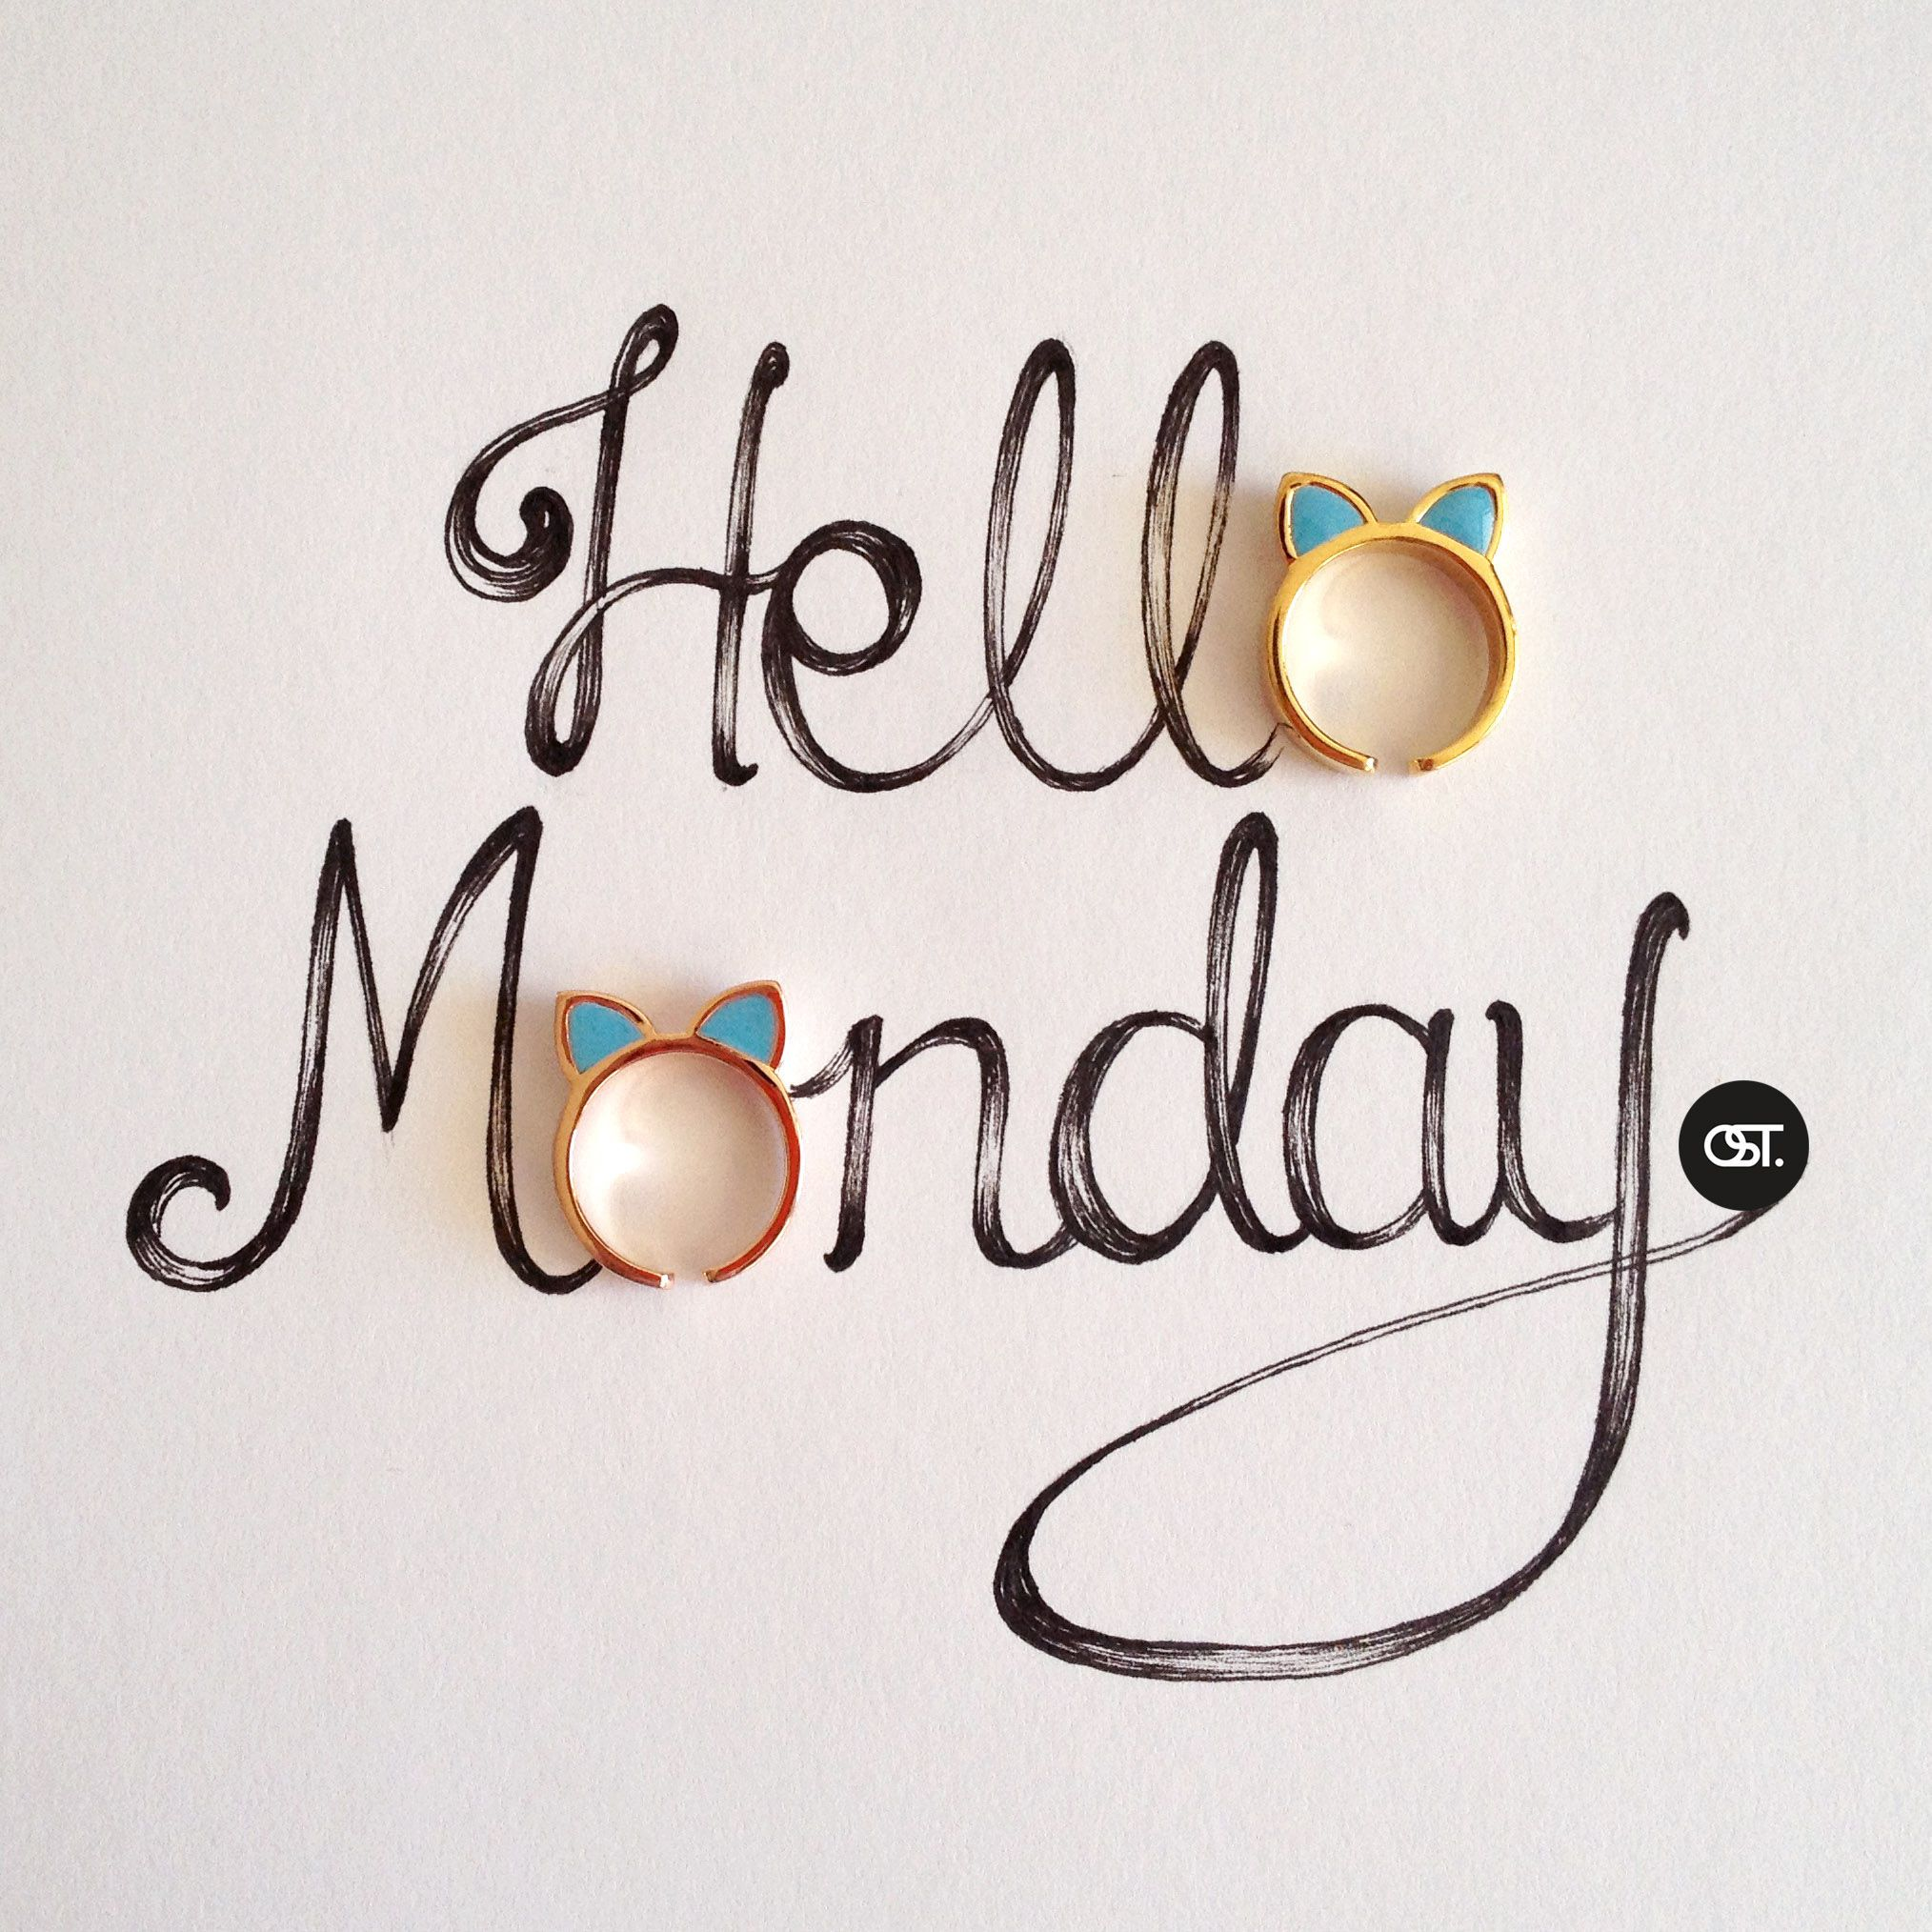 Hello wednesday pictures photos and images for facebook tumblr - Hello Monday Cat Rings Available